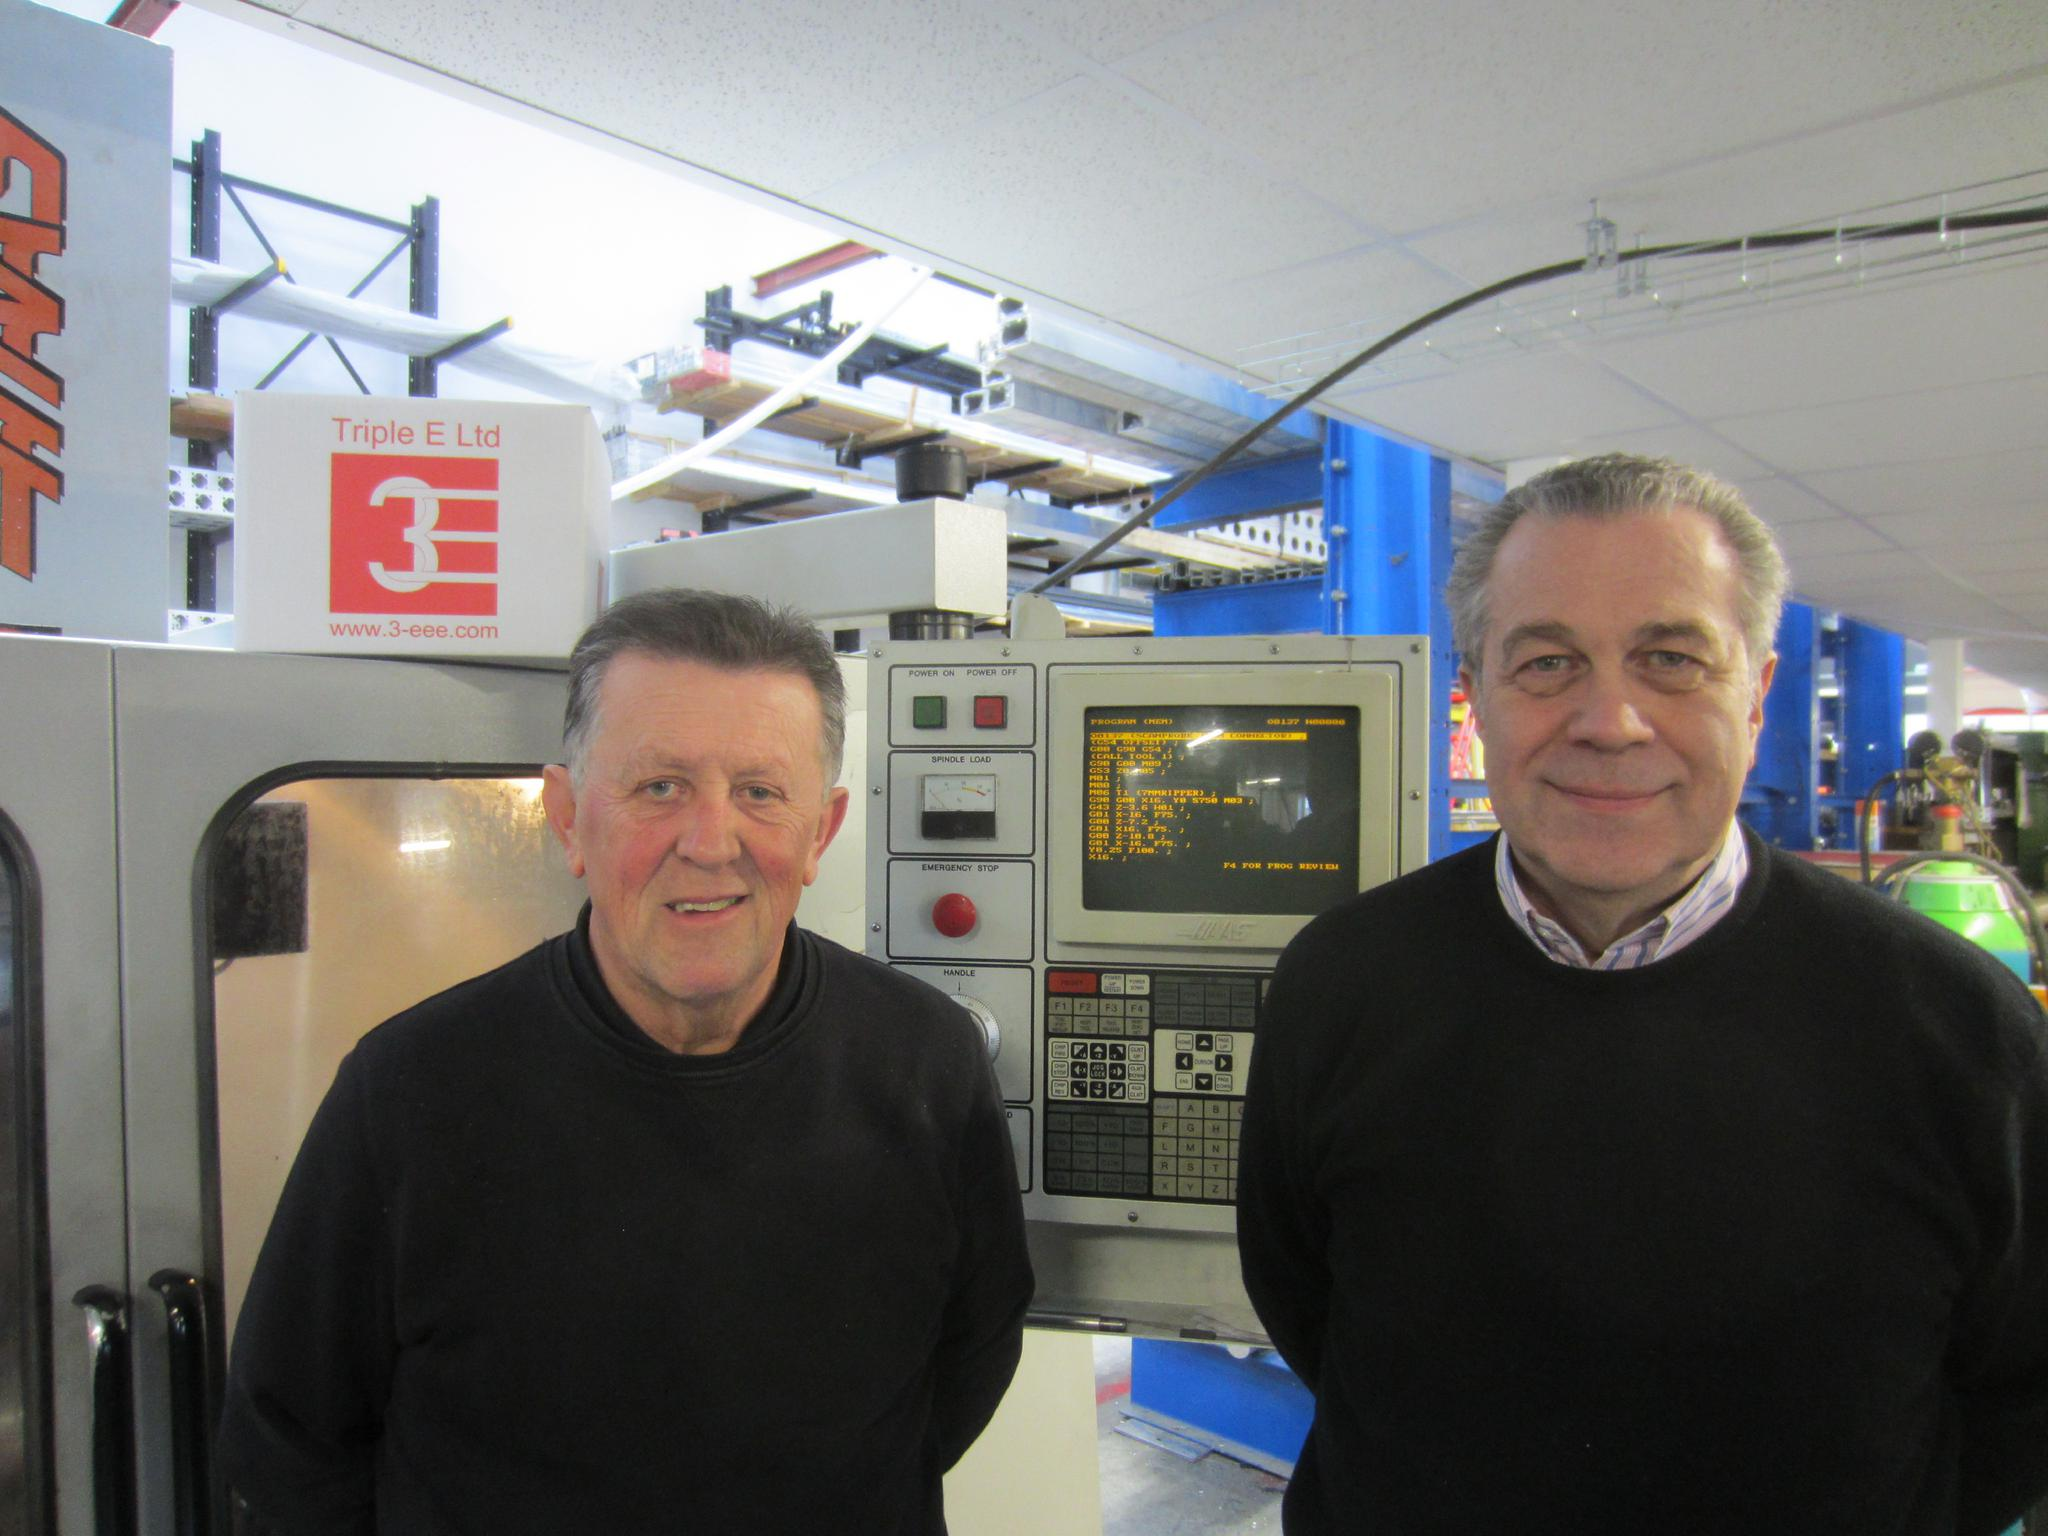 Triple E expands factory facilities alongside new precision engineering division